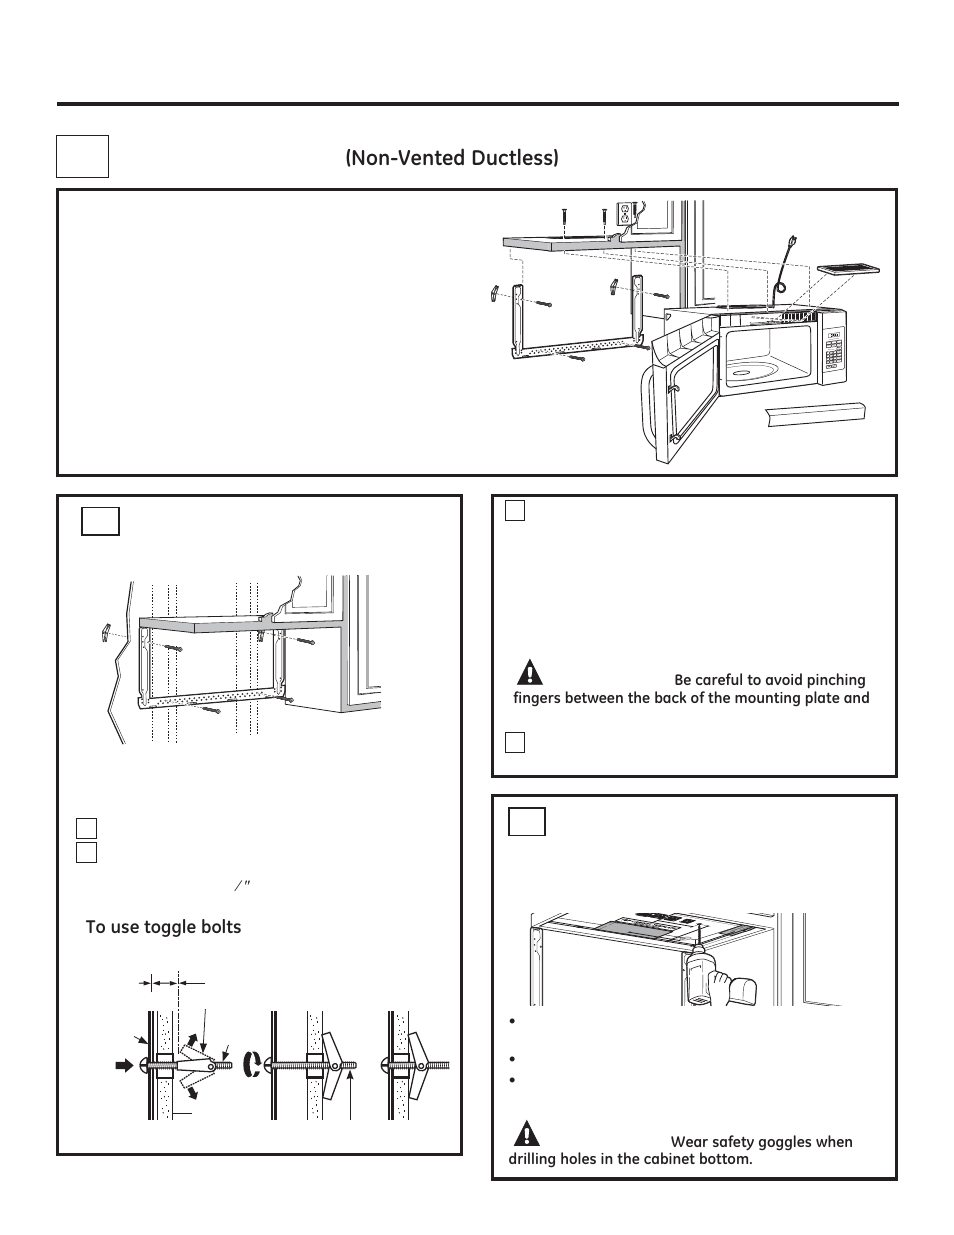 Electrical Installation Manual Guide